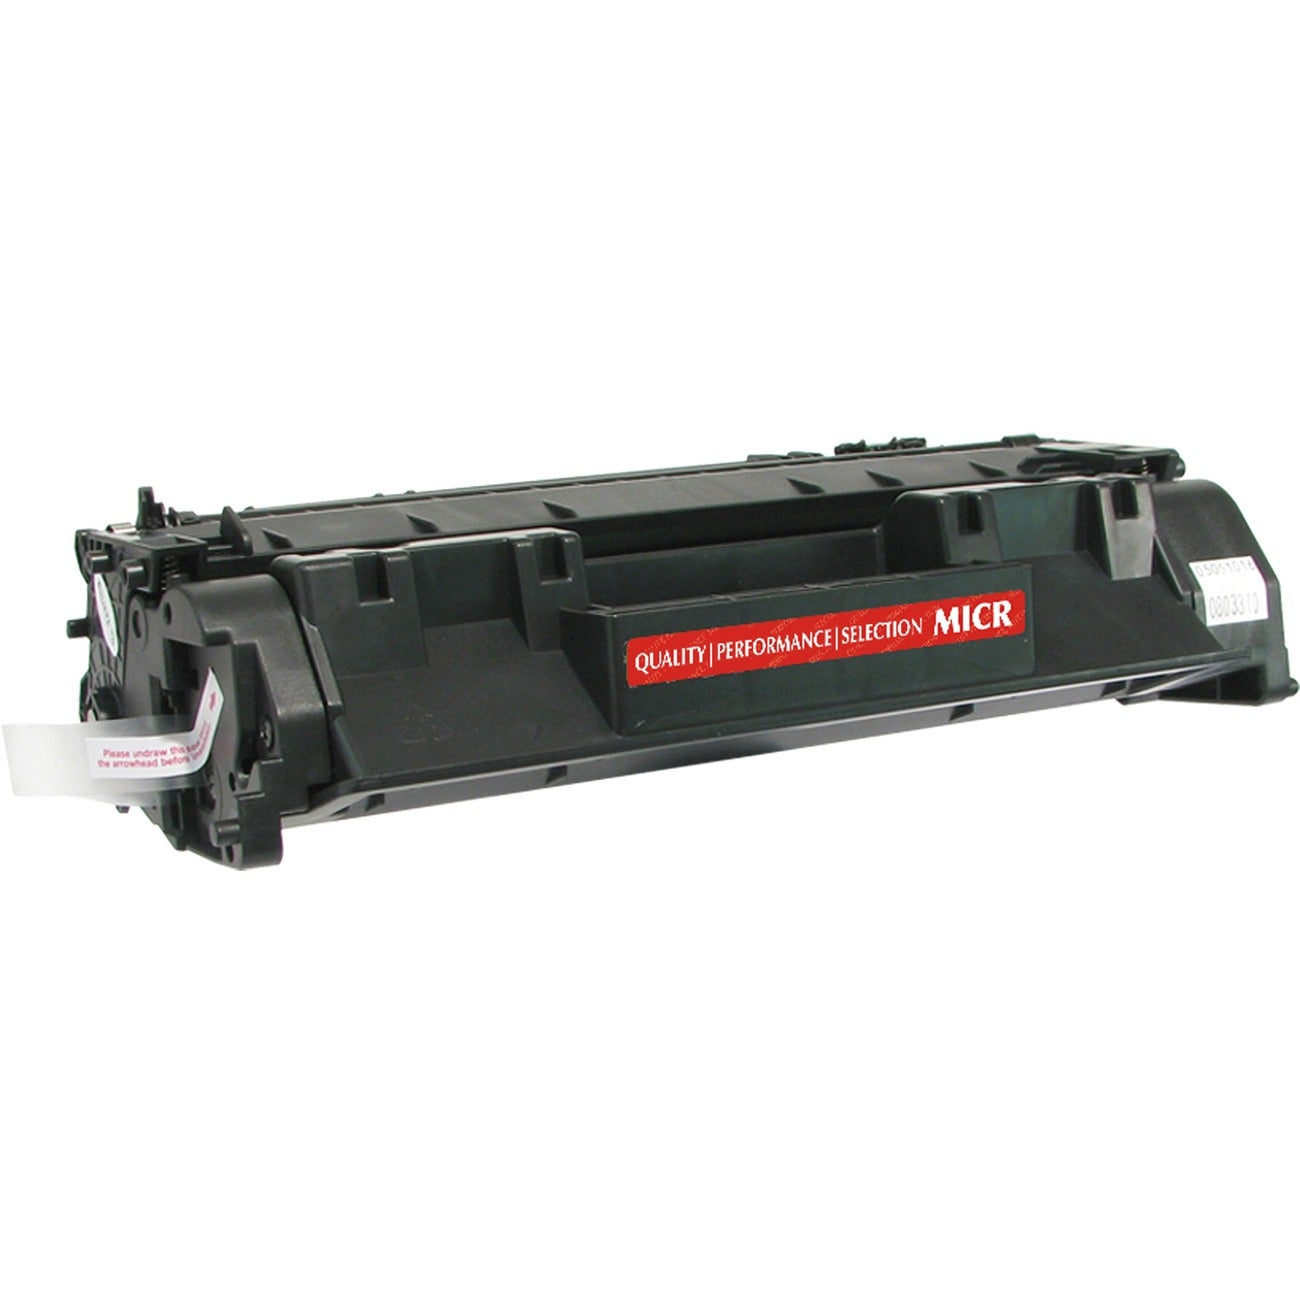 V7 MICR Toner Cartridge - Remanufactured for HP (CE505A) - Black